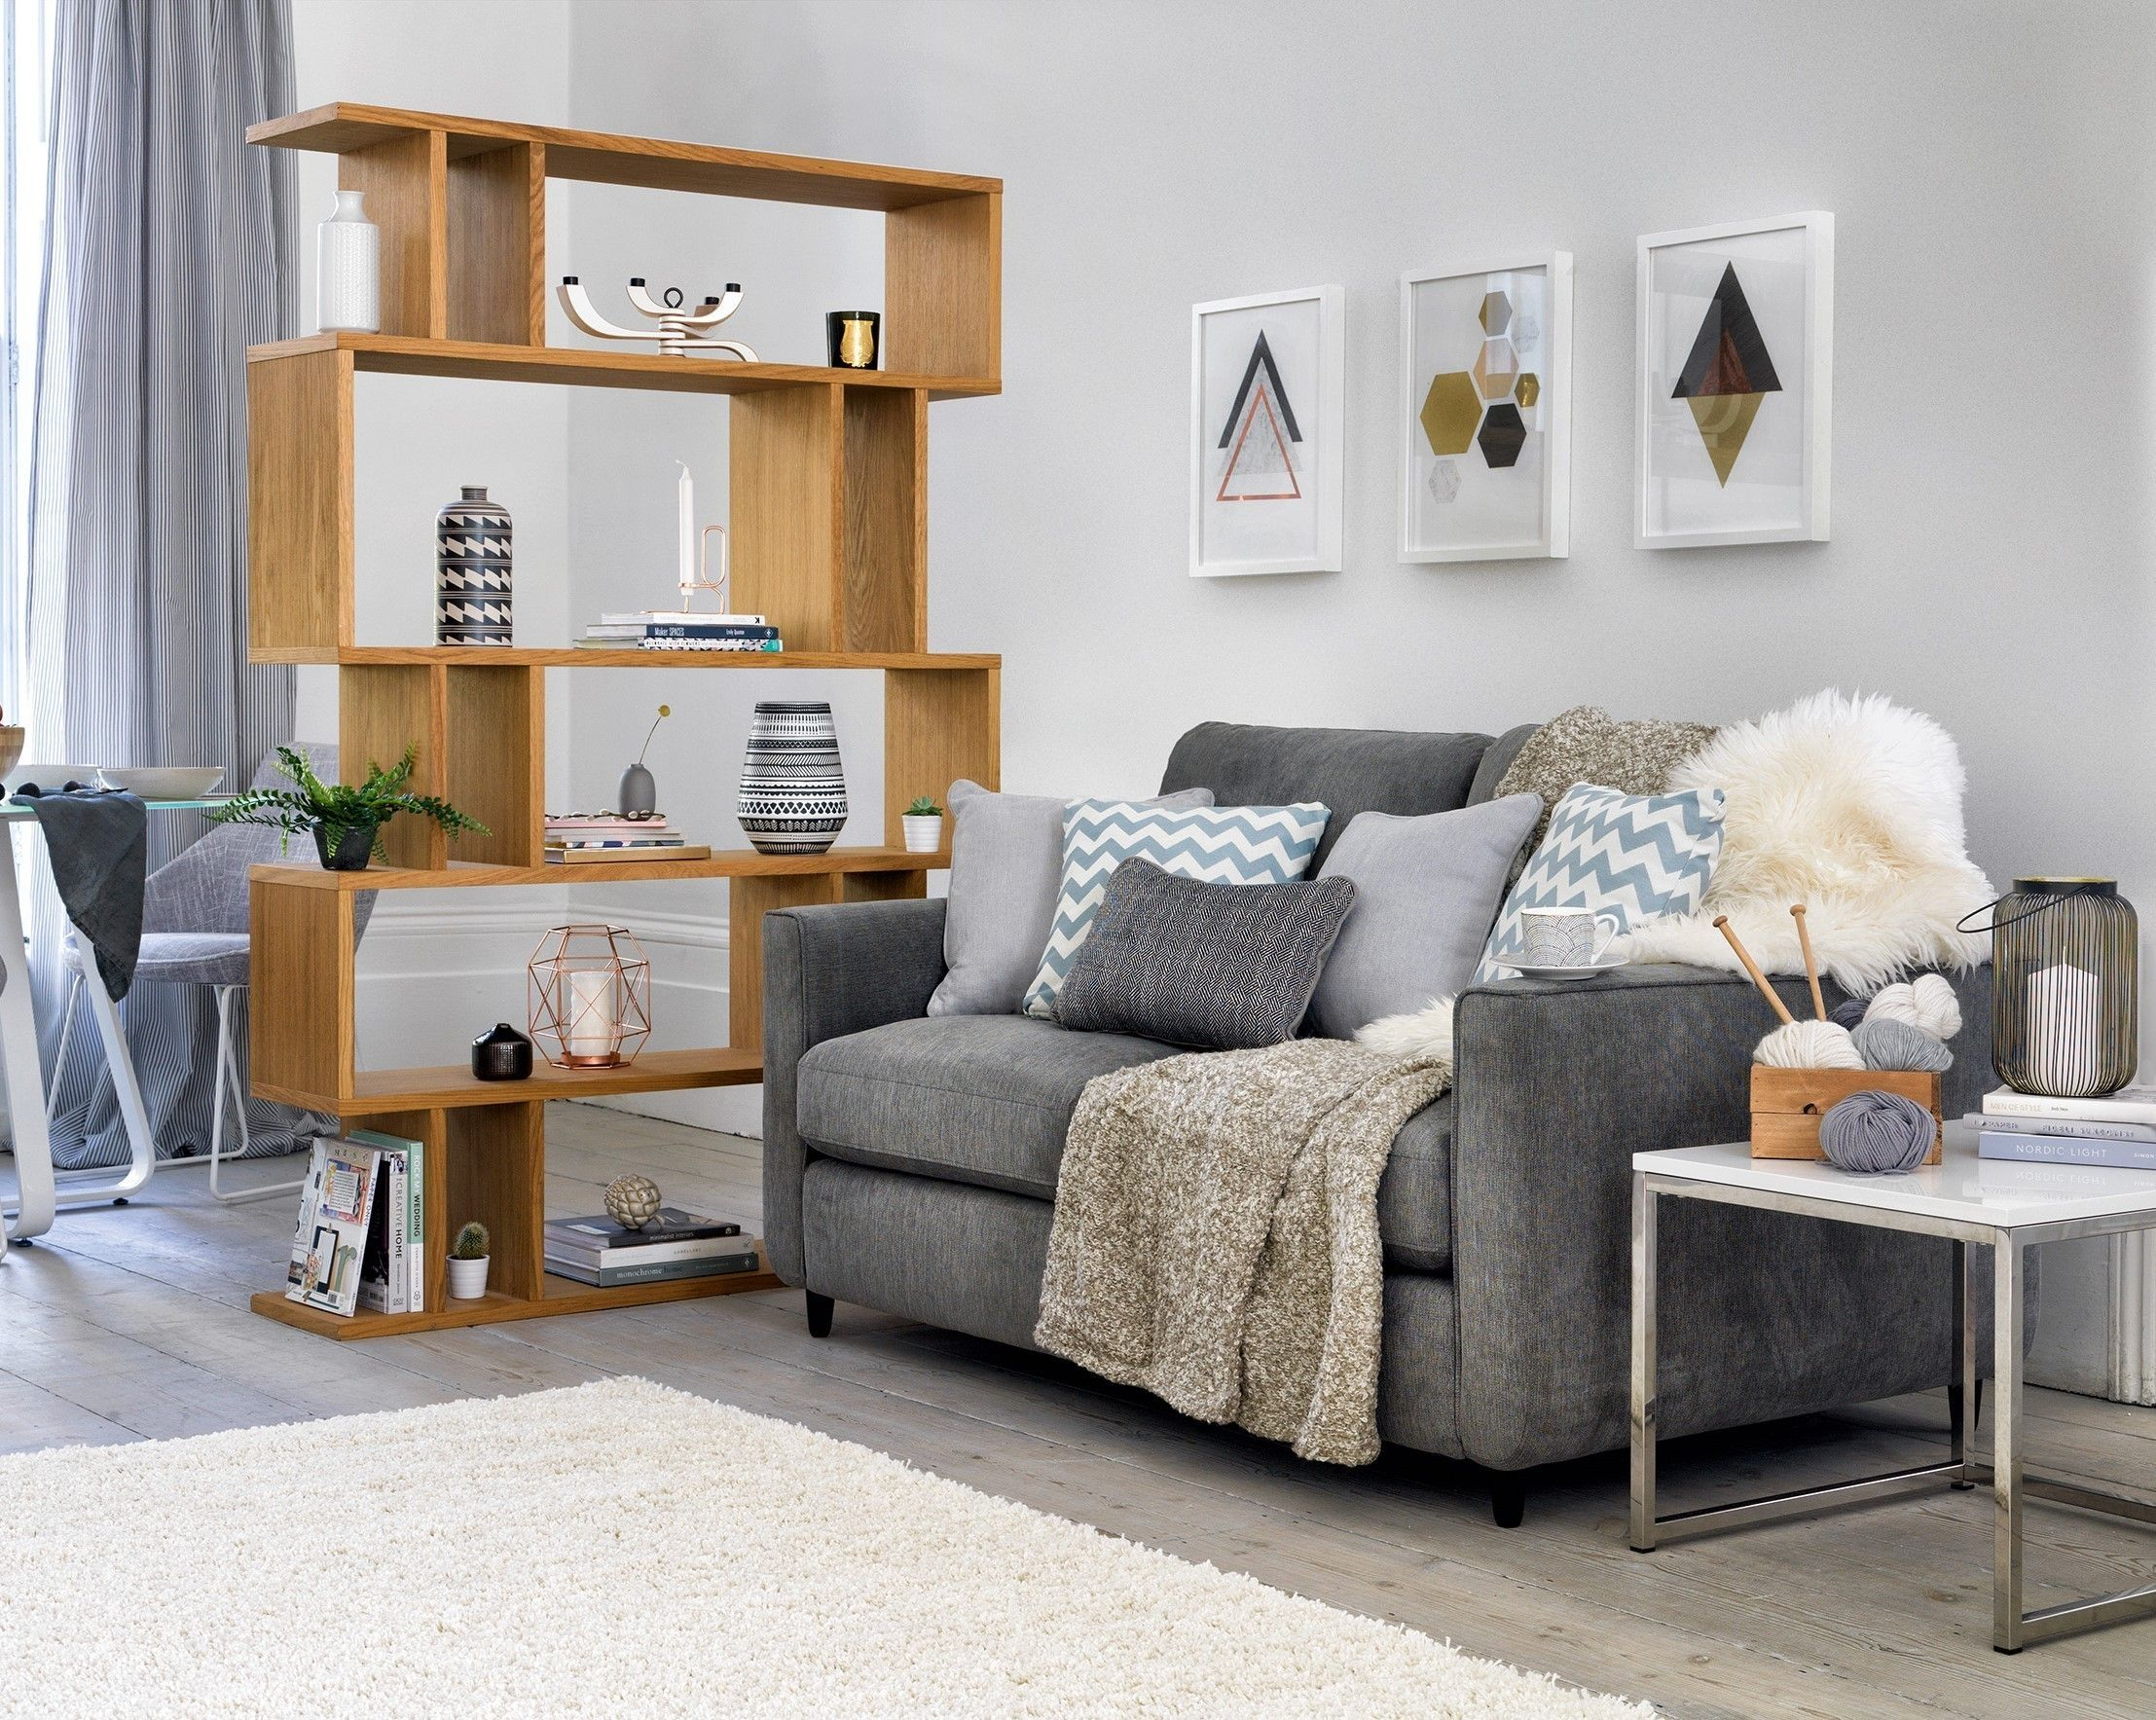 Esprit Two Seater Fabric Sofa, £549 - currently reduced online to £499; Content By Conran Elmari Tall Shelving Unit, £739 - currently reduced online to £449, Furniture Village.